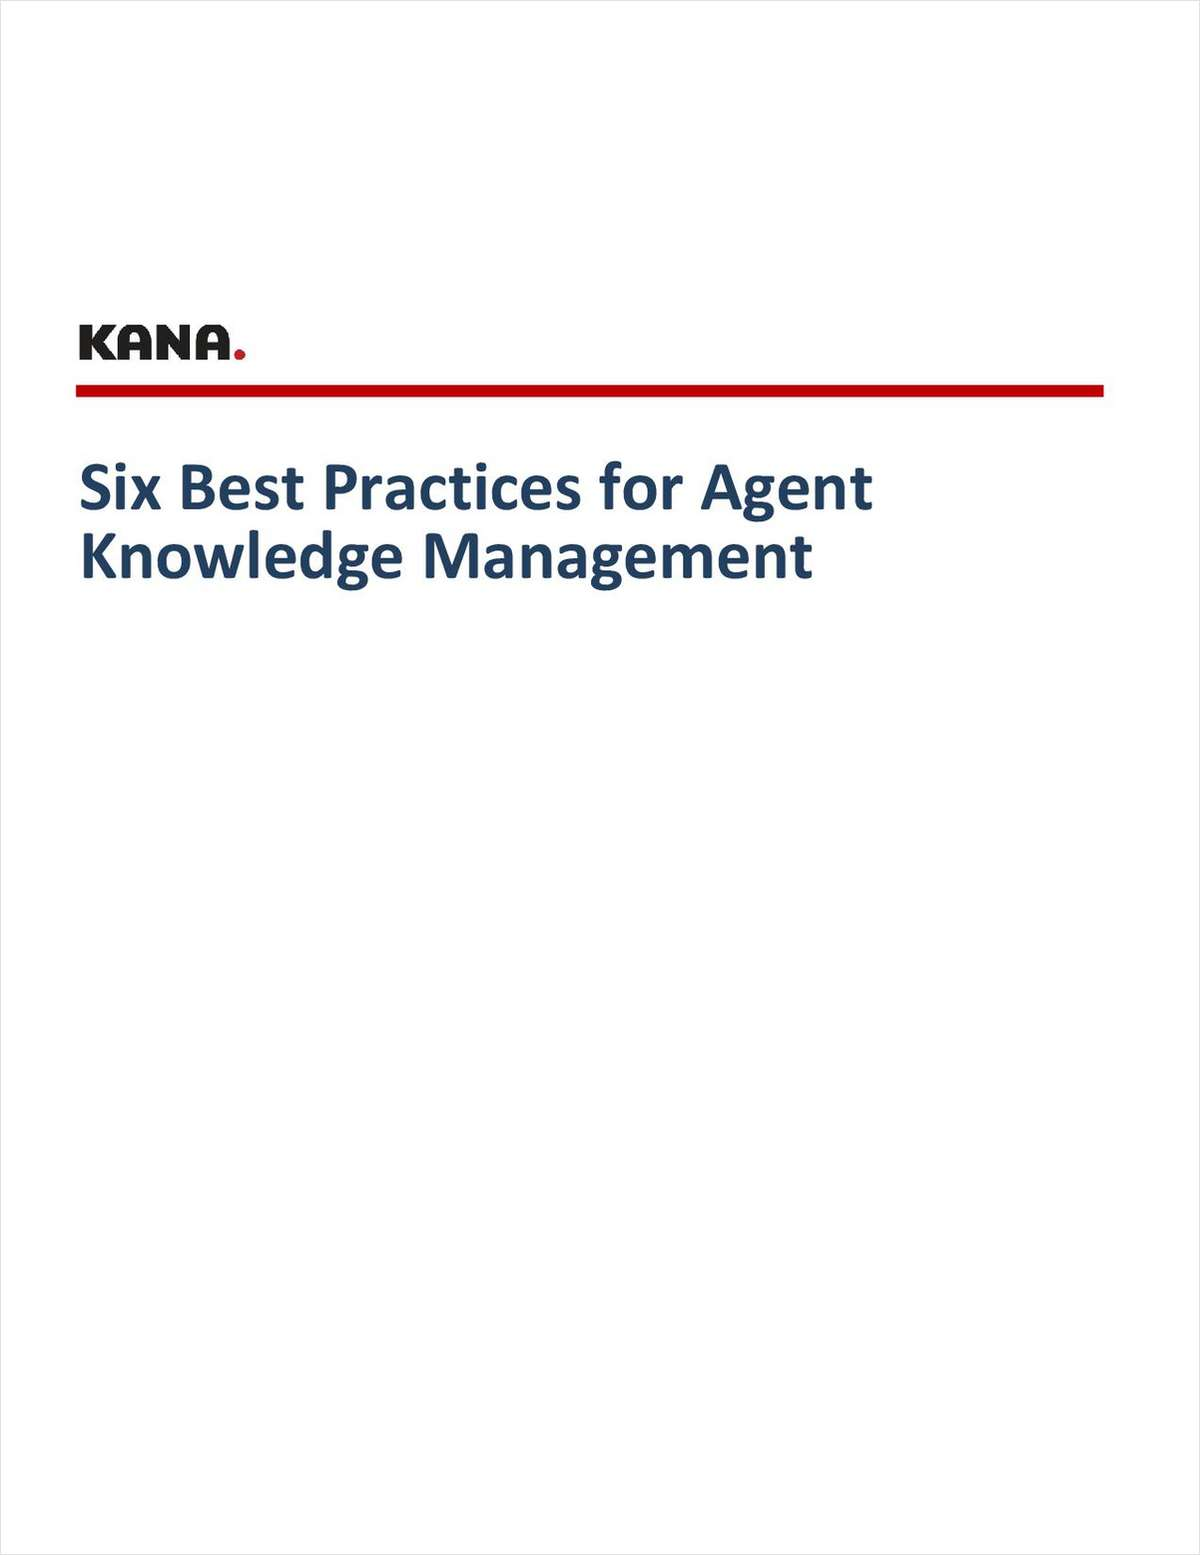 Customer Service Knowledge Management: Strategic & Implementation Tips